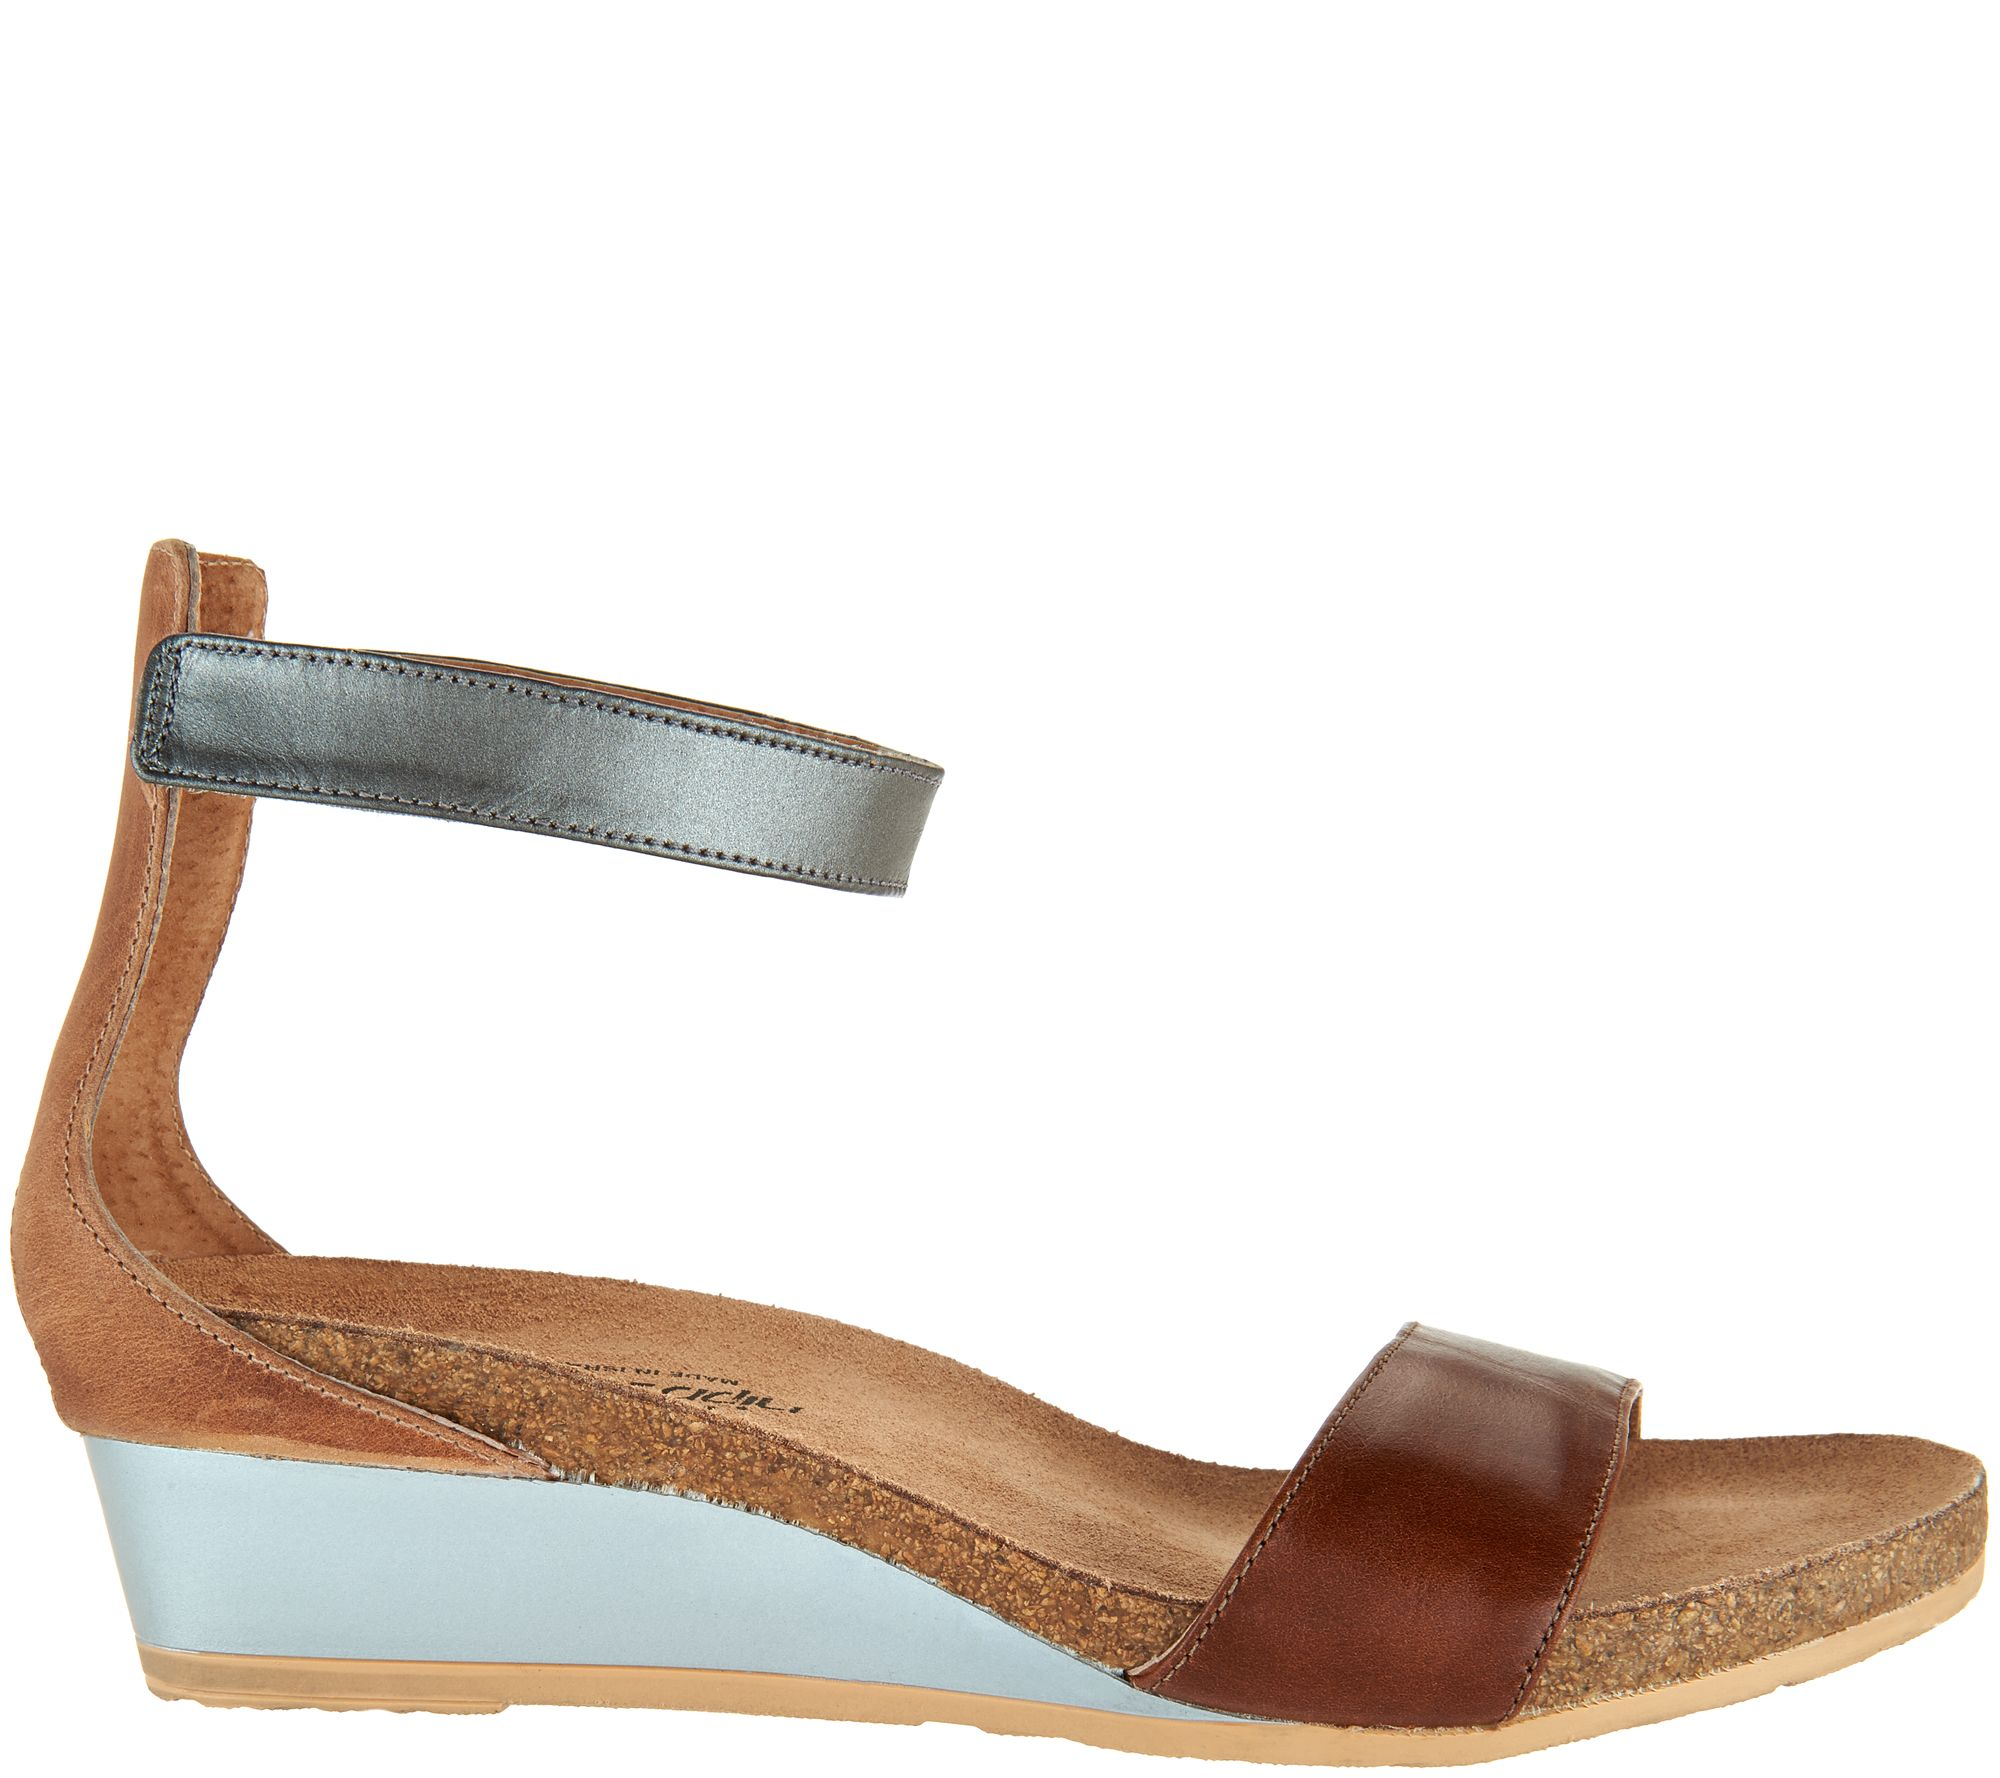 eaed1b523c6a Naot Leather Ankle Strap Wedge Sandals - Pixie - Page 1 — QVC.com